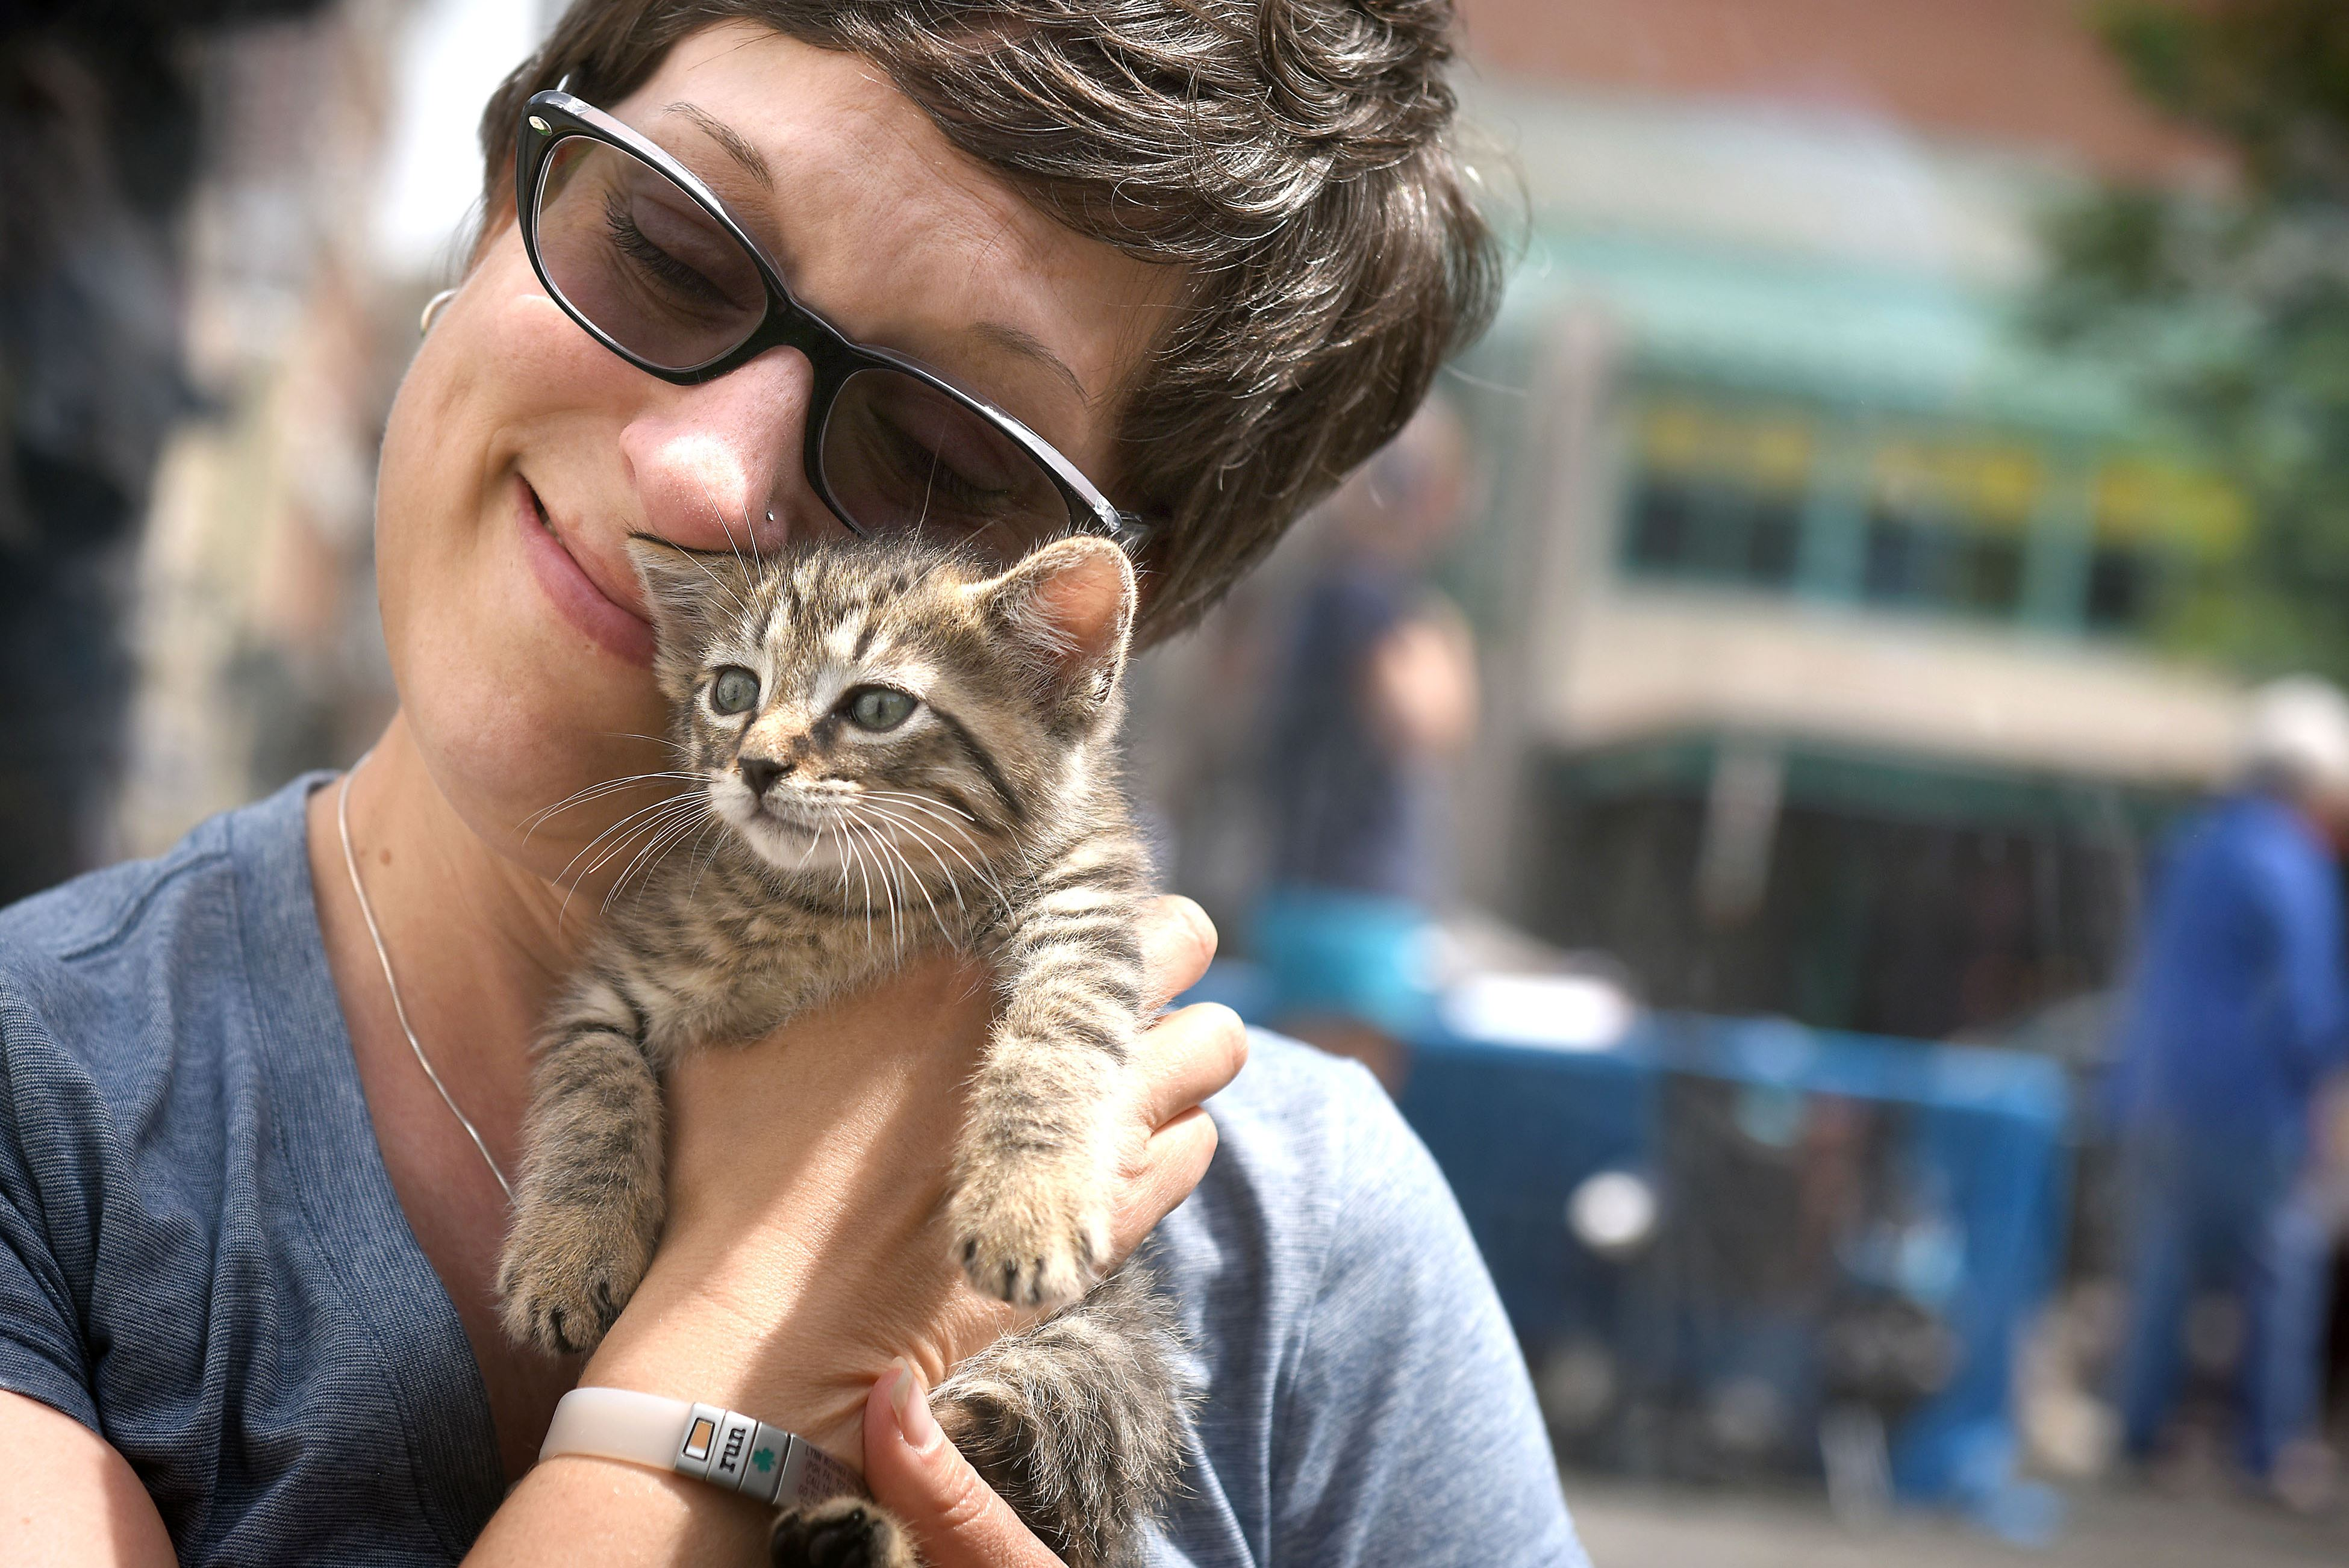 20160520smKitten001 Lynn O'Donnell of the South Side takes a break from her job at PNC Bank to hold one of several kittens brought to Market Square by Animal Friends in an effort to lower stress levels off Downtown office workers.